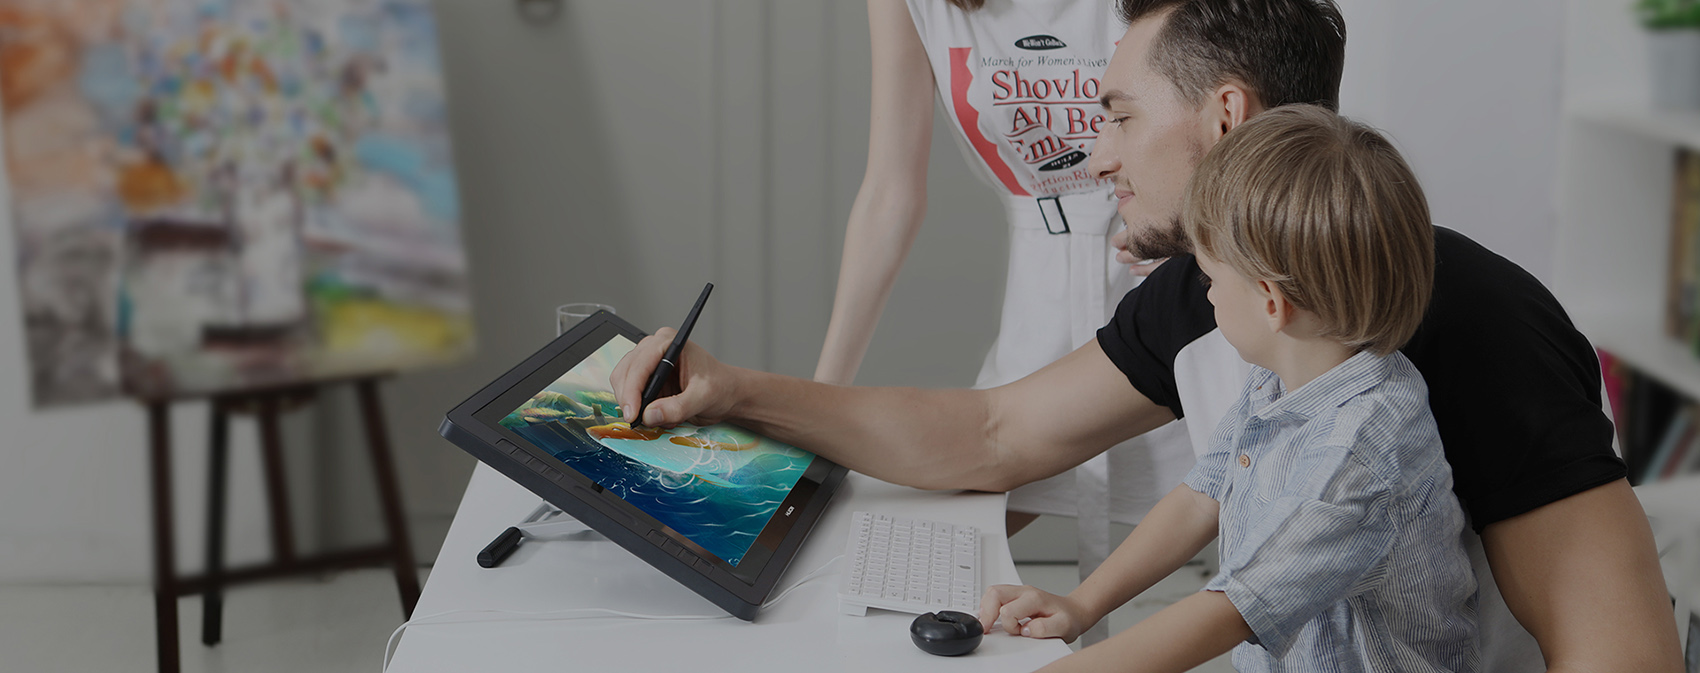 Huion KAMVAS Pro 20 GT-192 Review: For Artists - My Tablet Guide